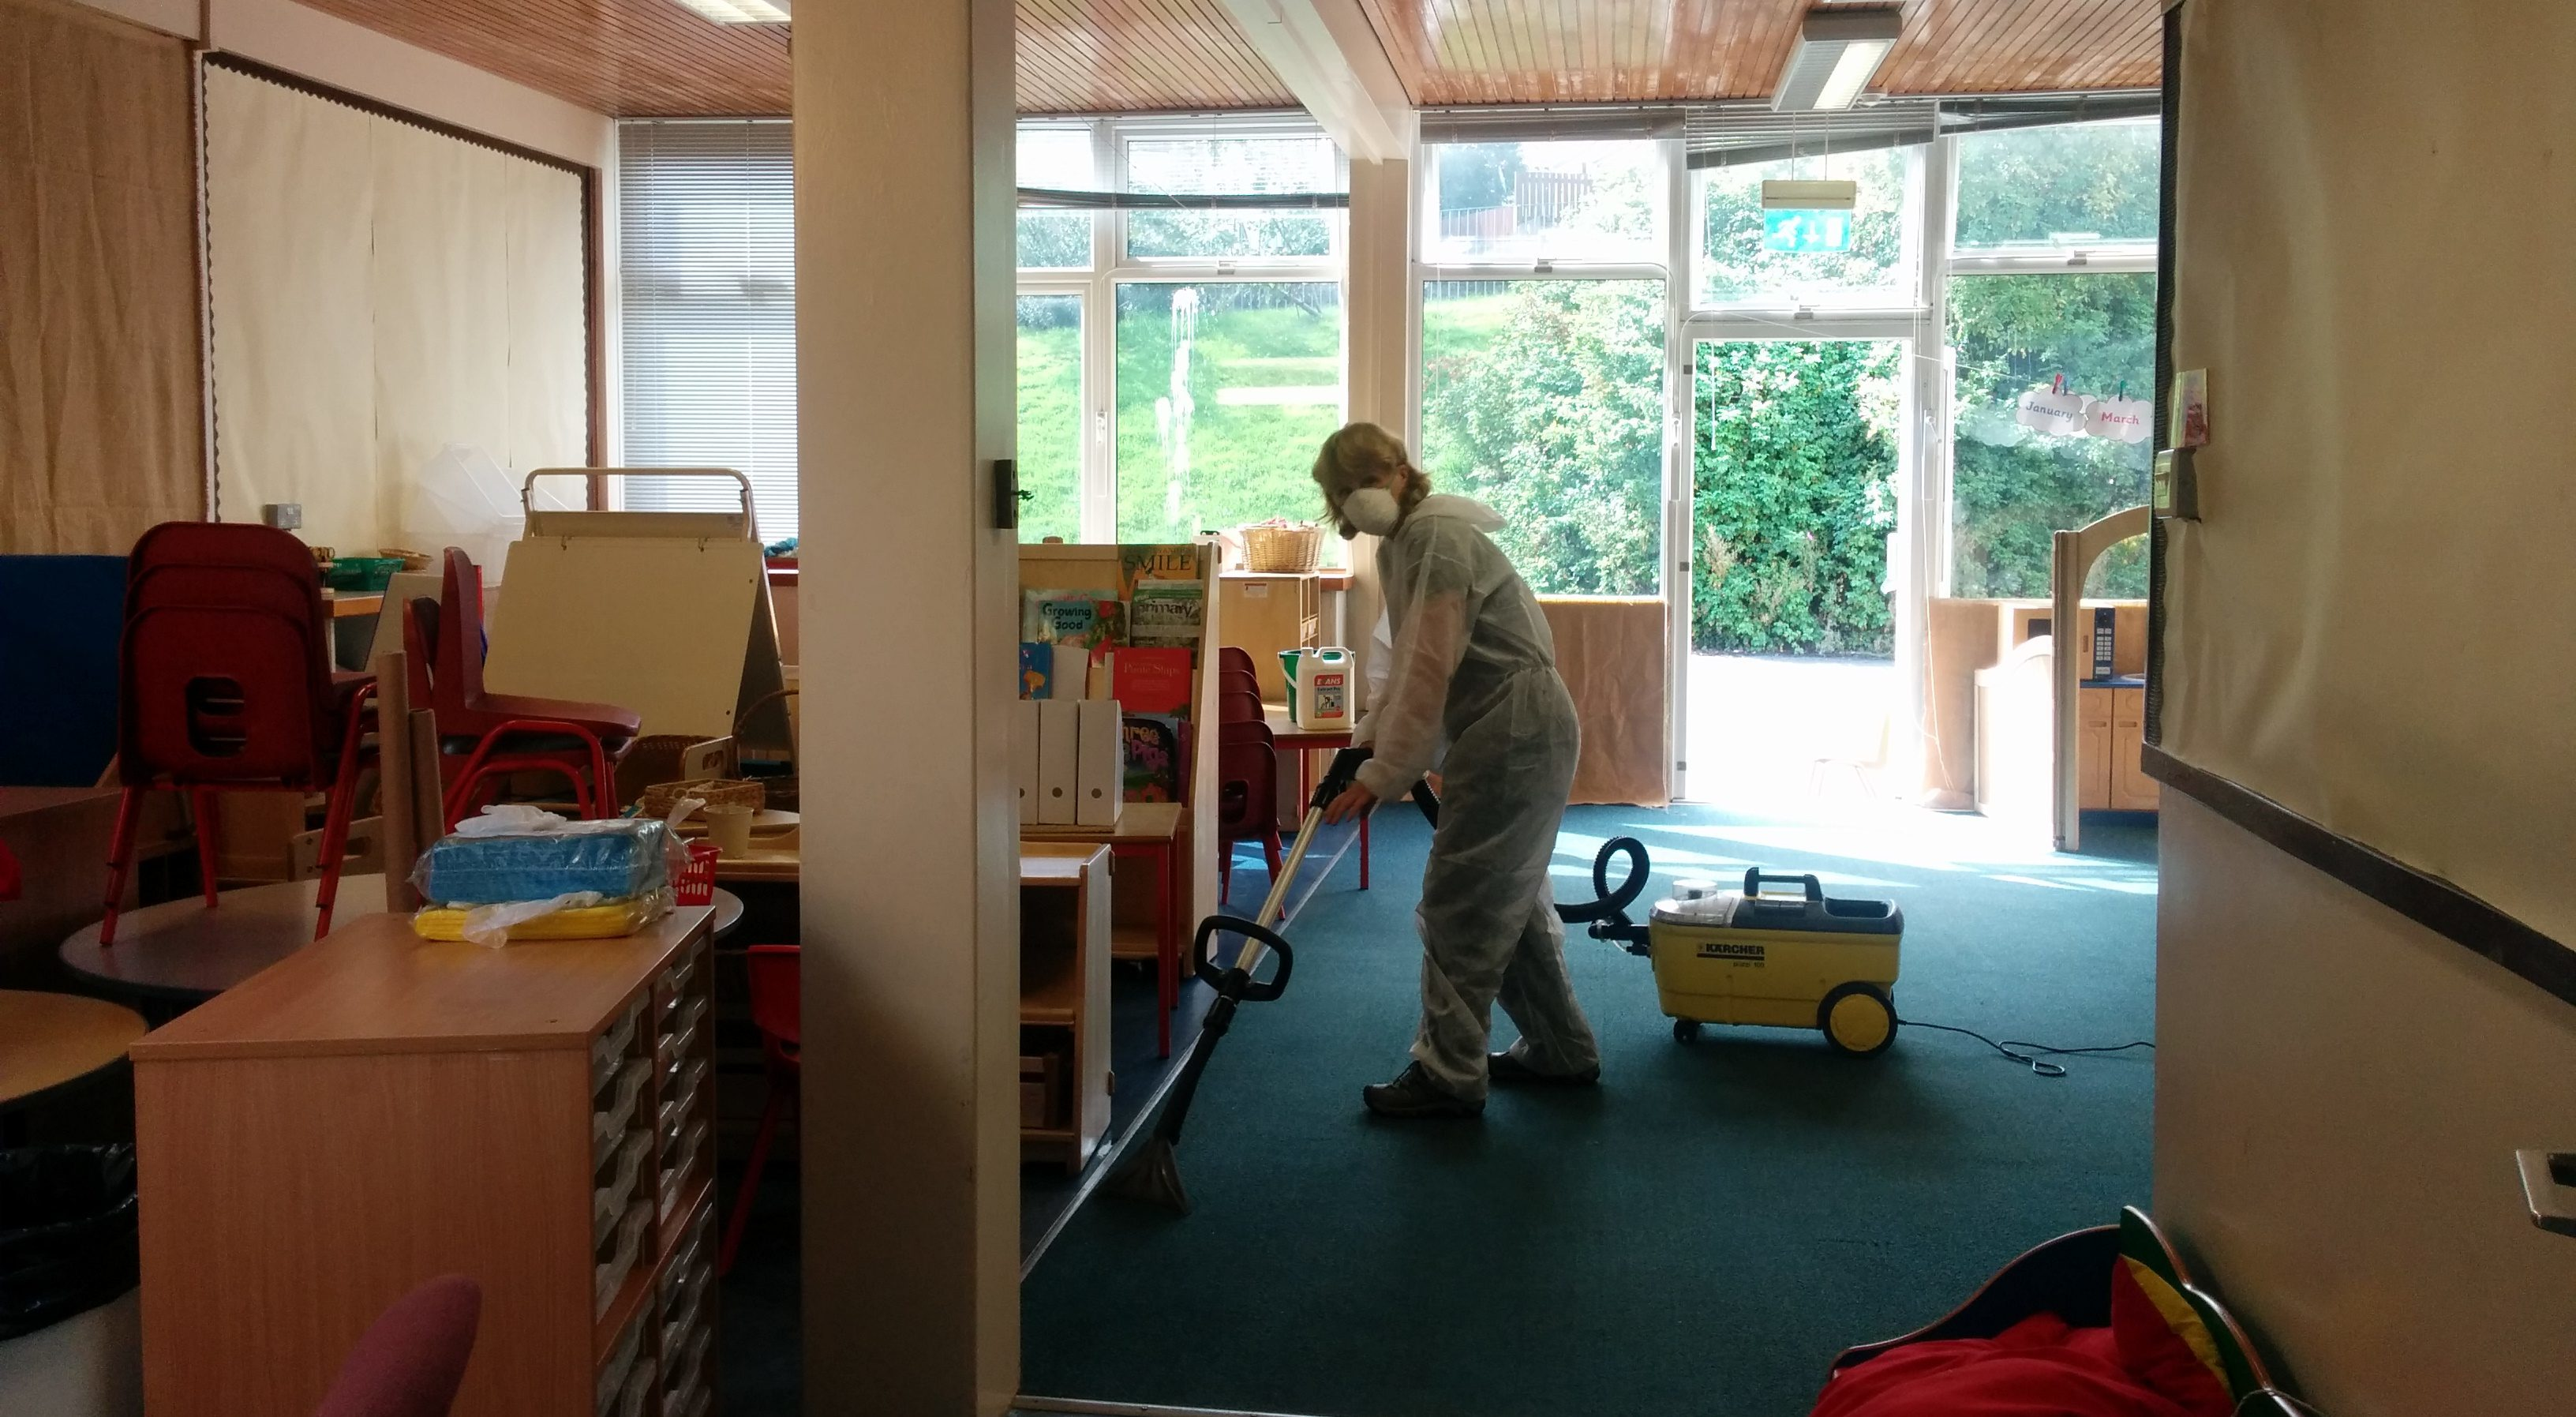 The clean up at Torbain primary and nursery is in full swing